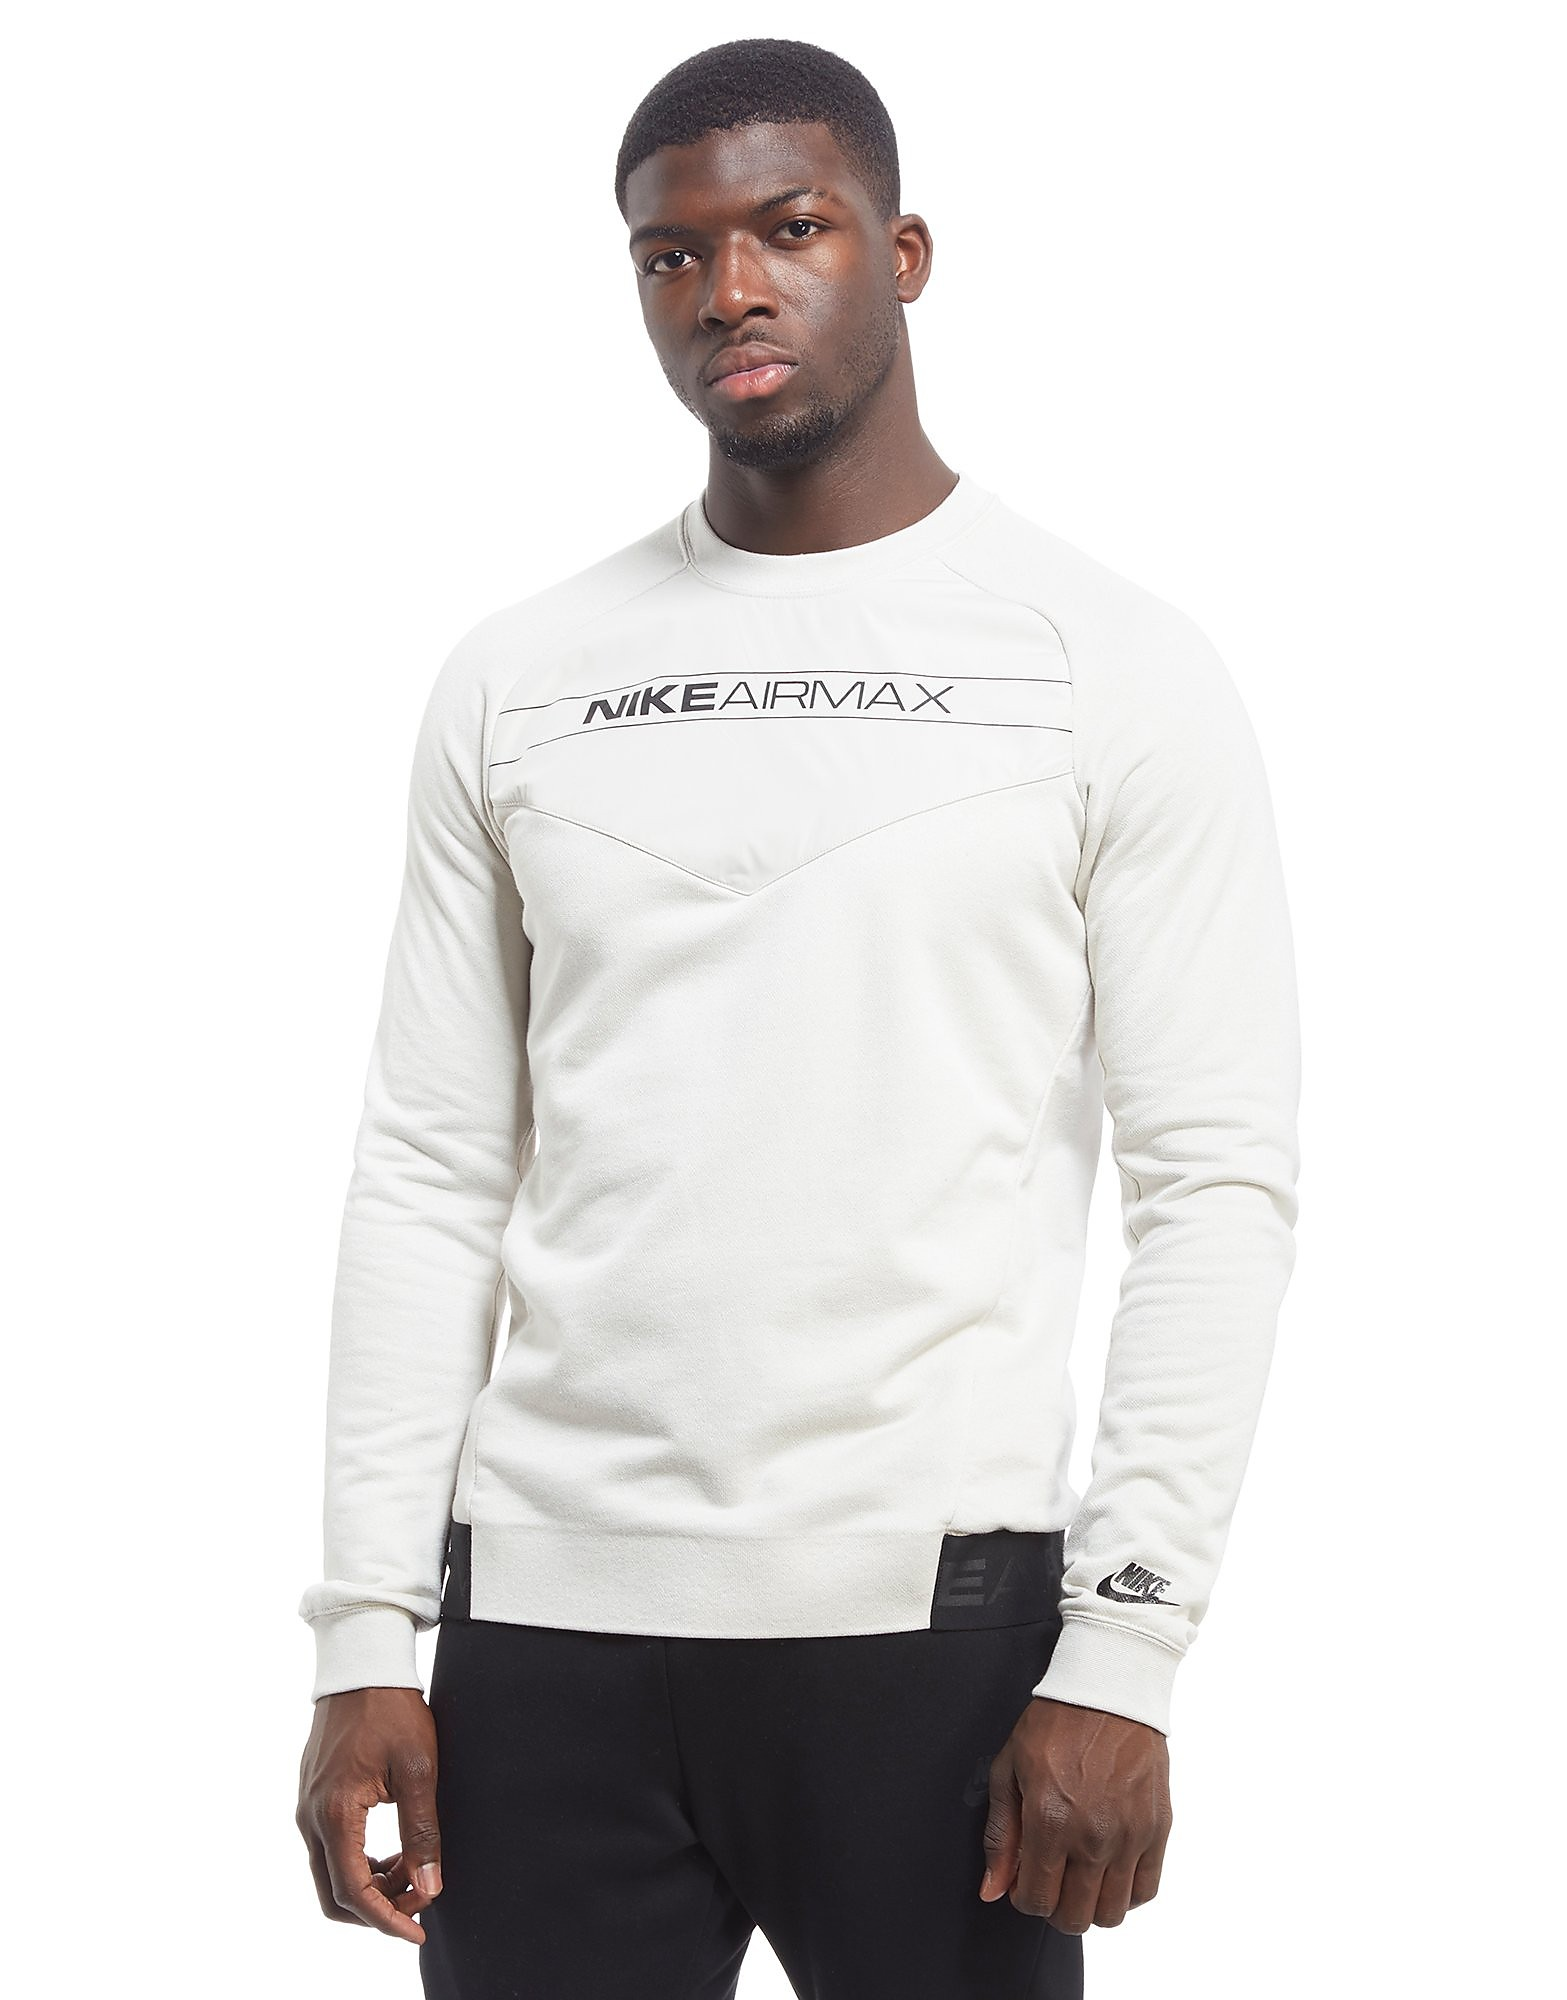 Nike Air Max Sweatshirt